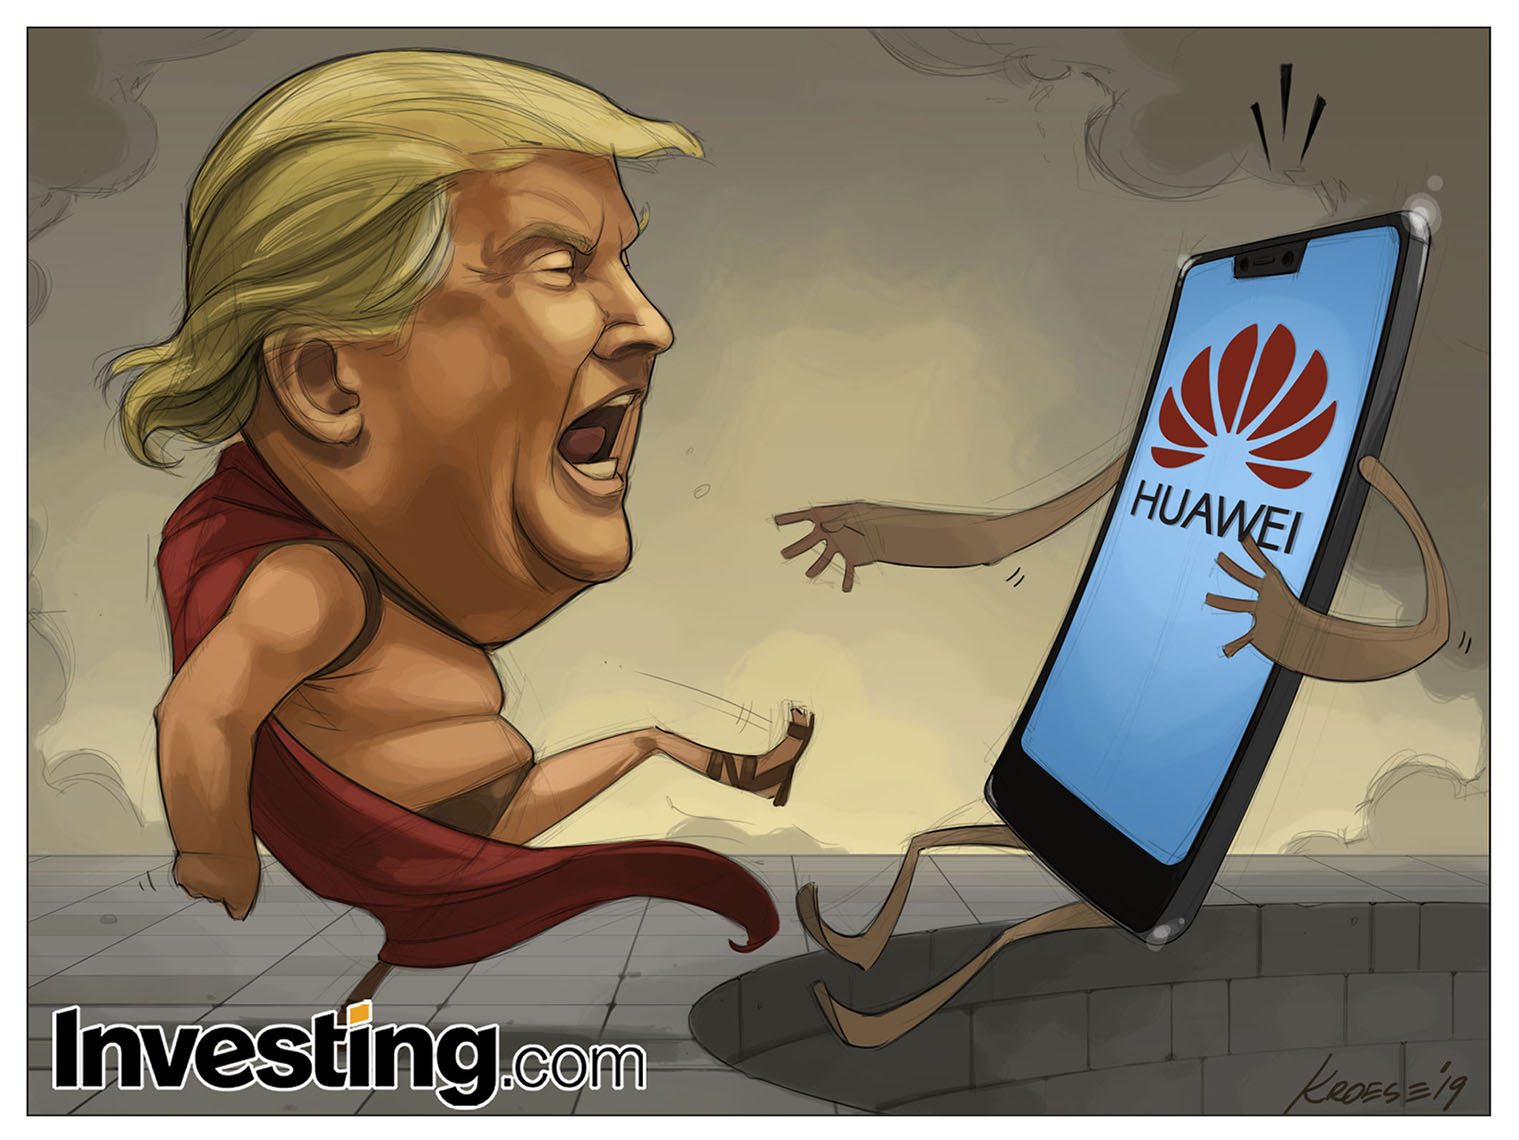 Trump's Latest Move To Blacklist Huawei Fuel Fears Of U.S.-China Tech War